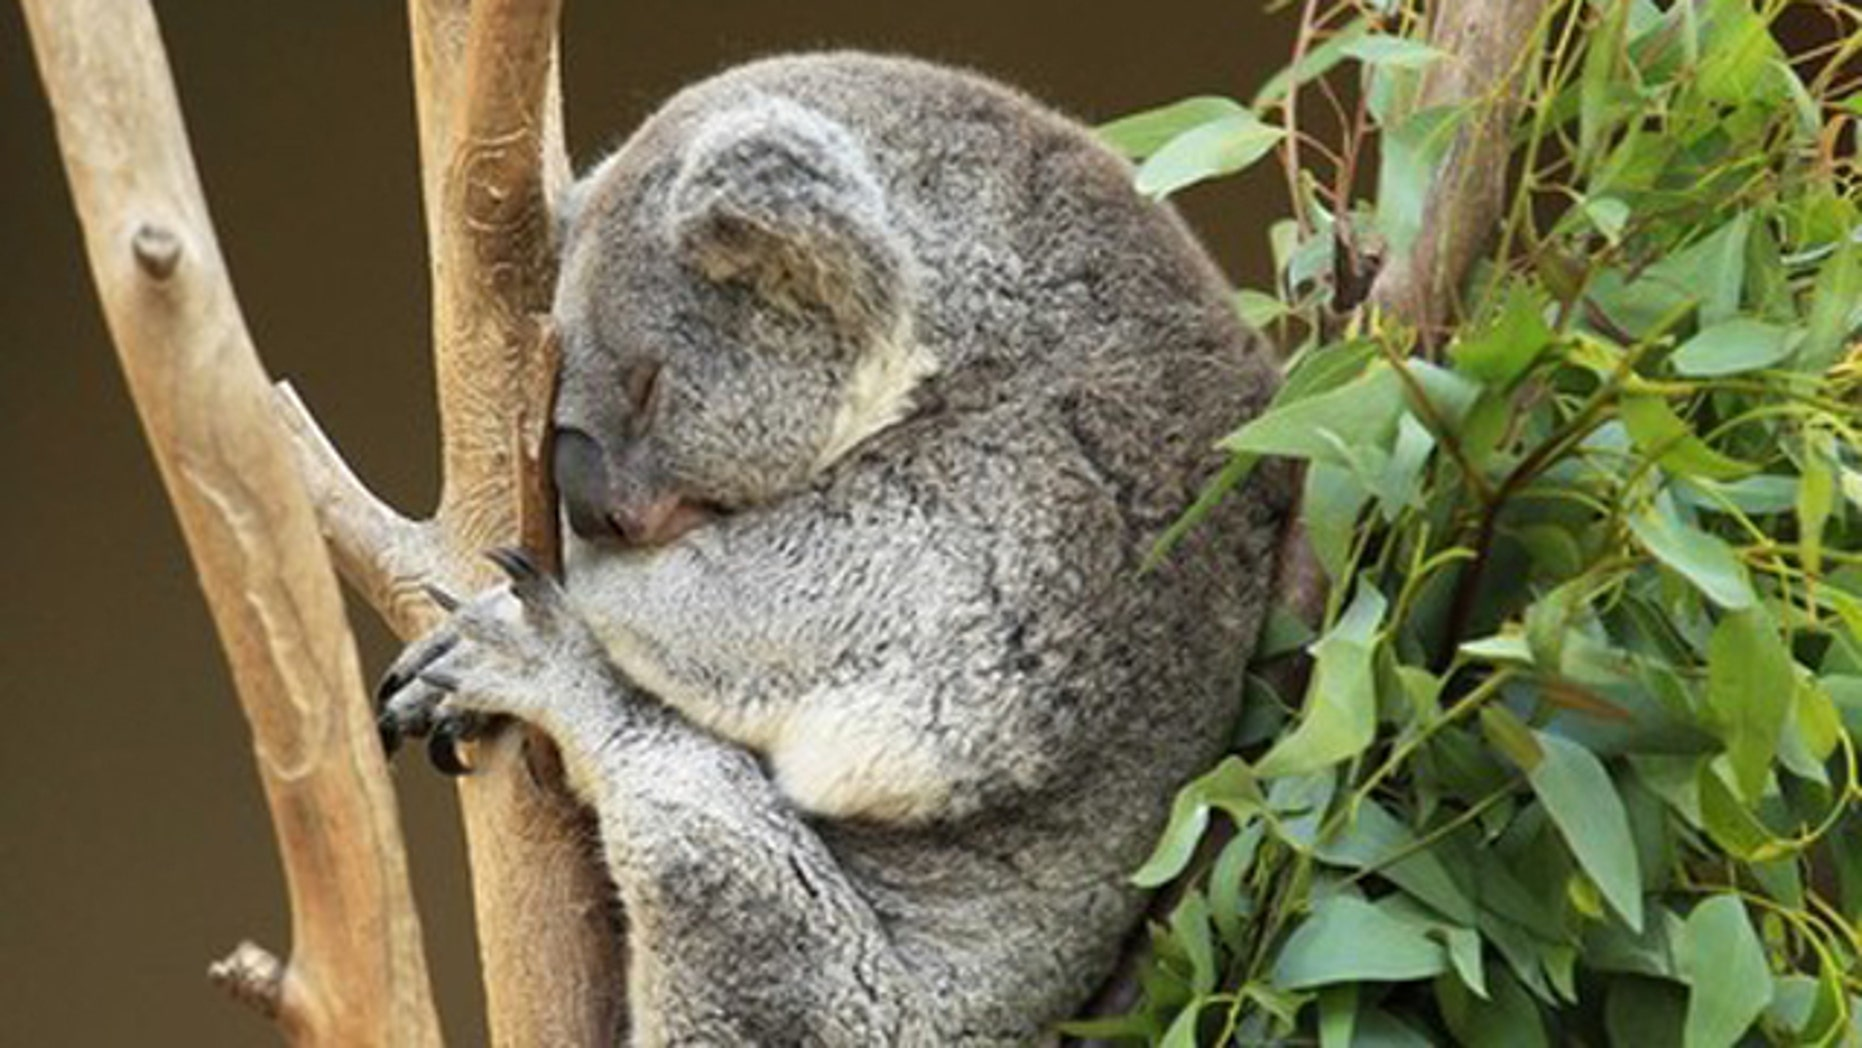 Sept. 23, 2011: A koala takes an afternoon nap in a tree at the San Diego Zoo, California.